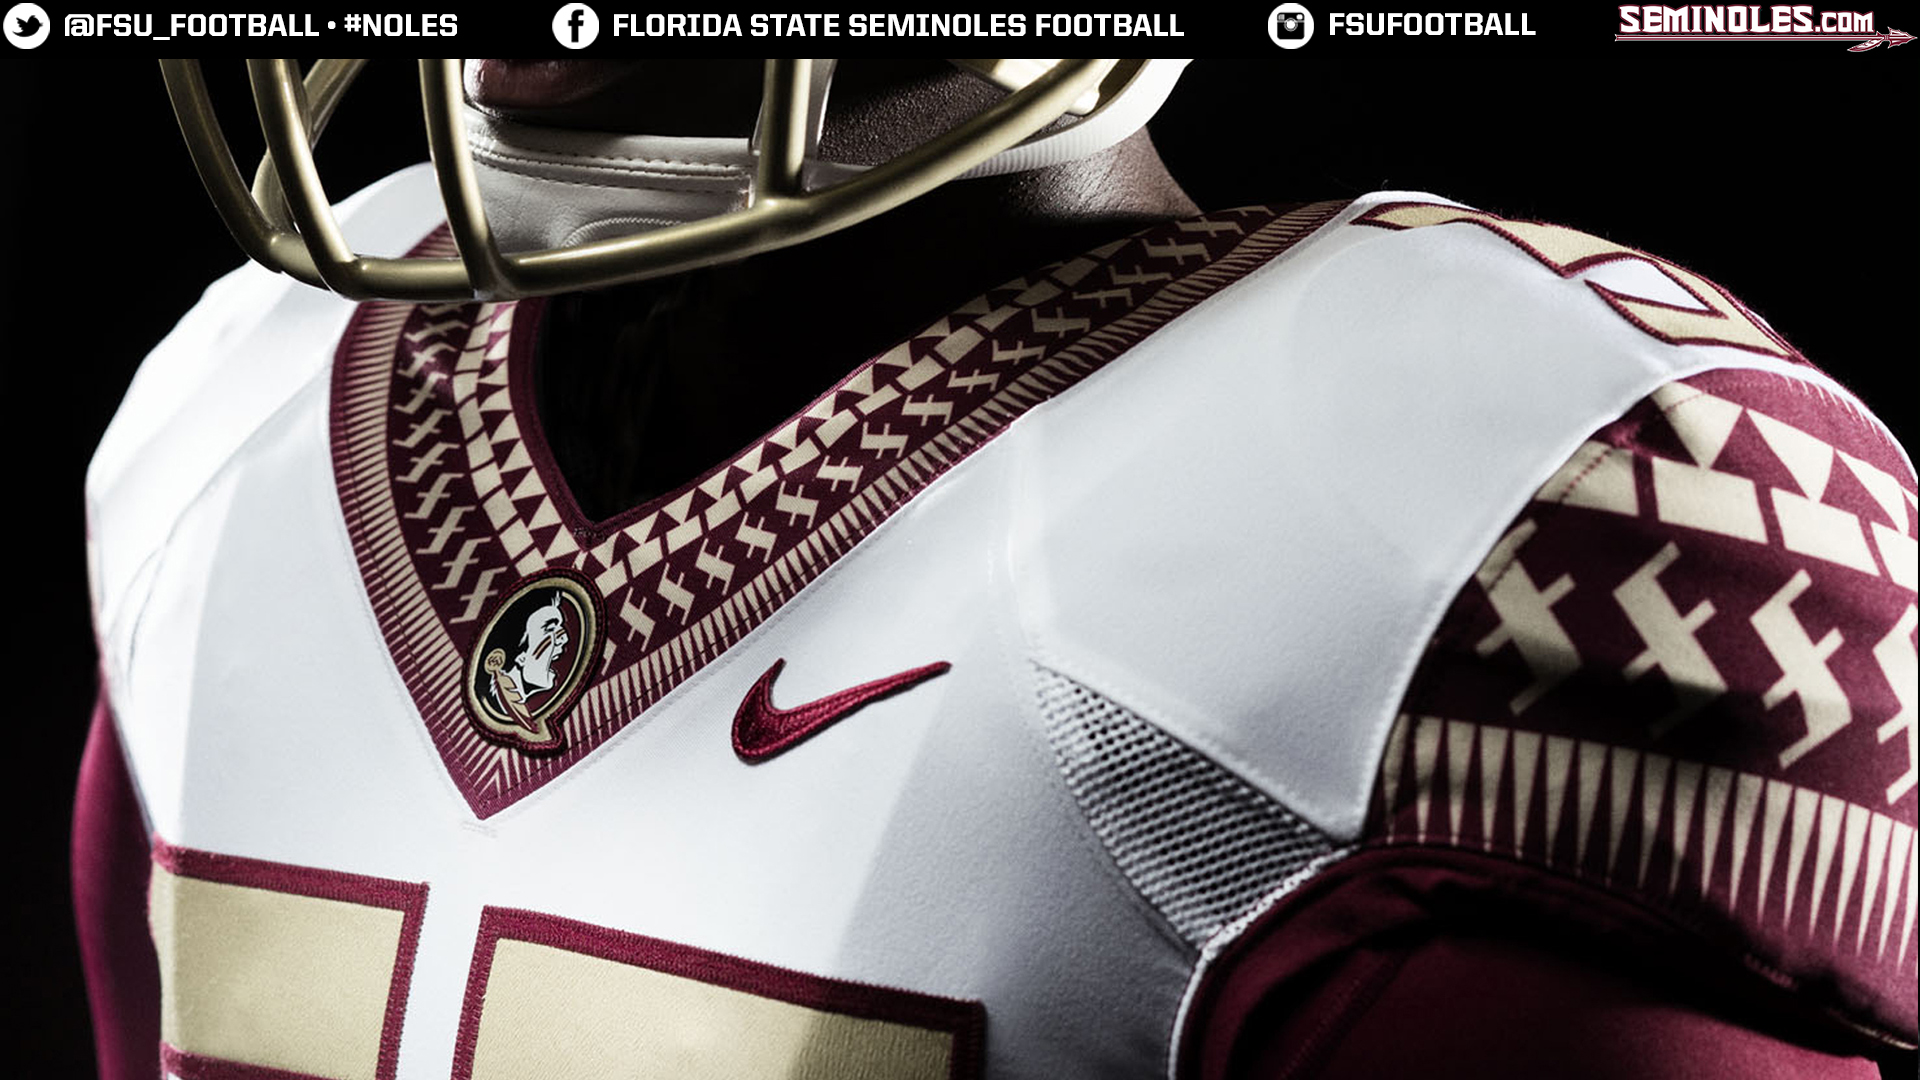 Seminoles Desktop Wallpapers Widescreen Football 3